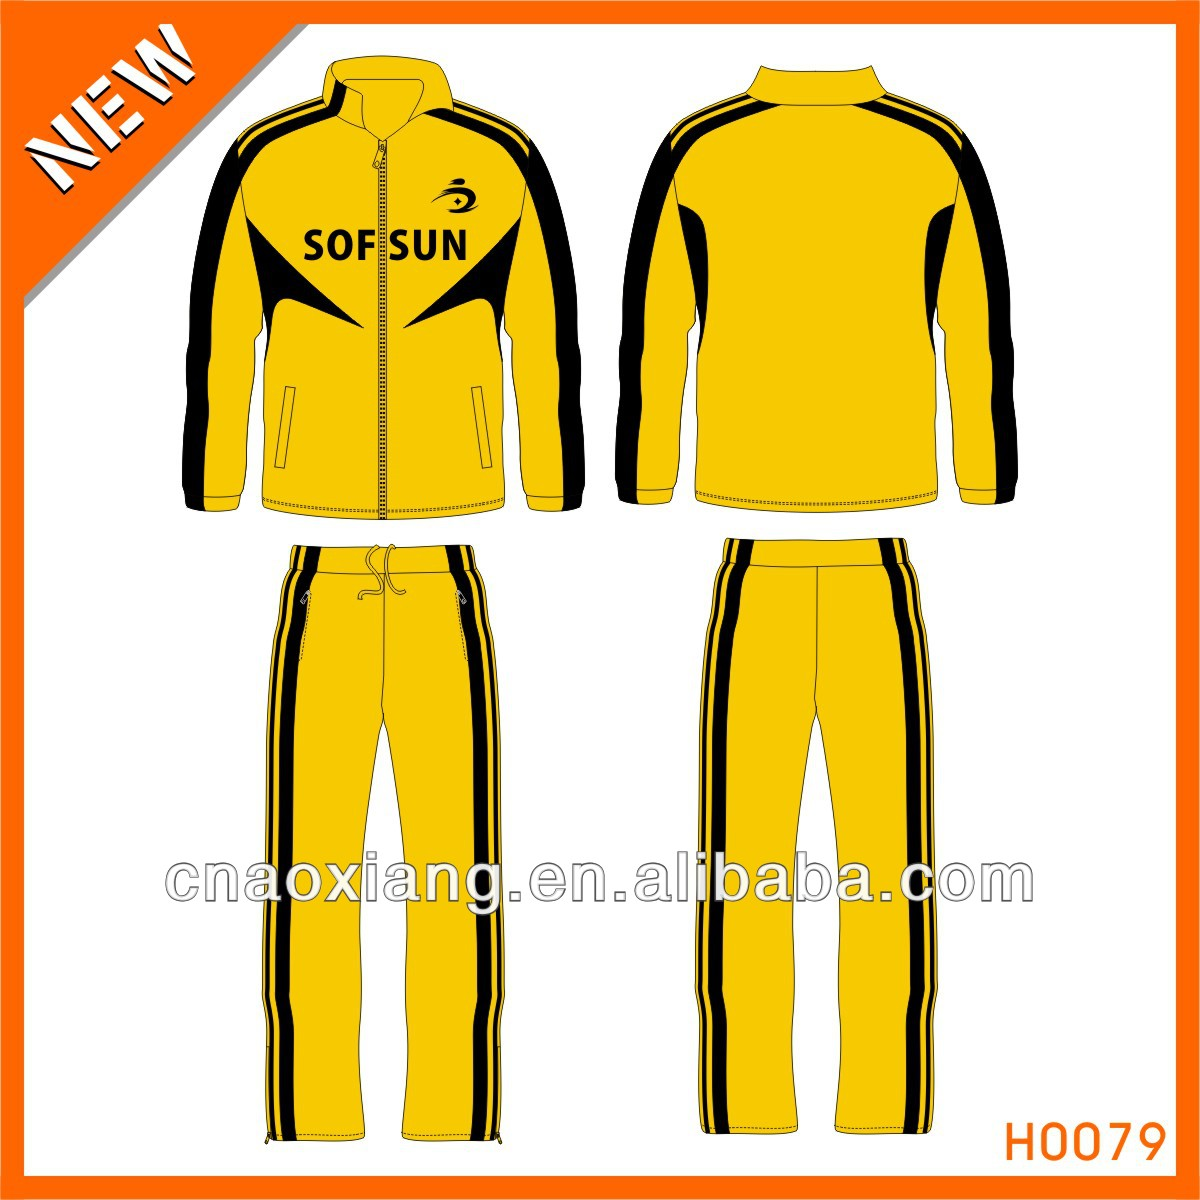 Guangzhou wholesales warm up track suit